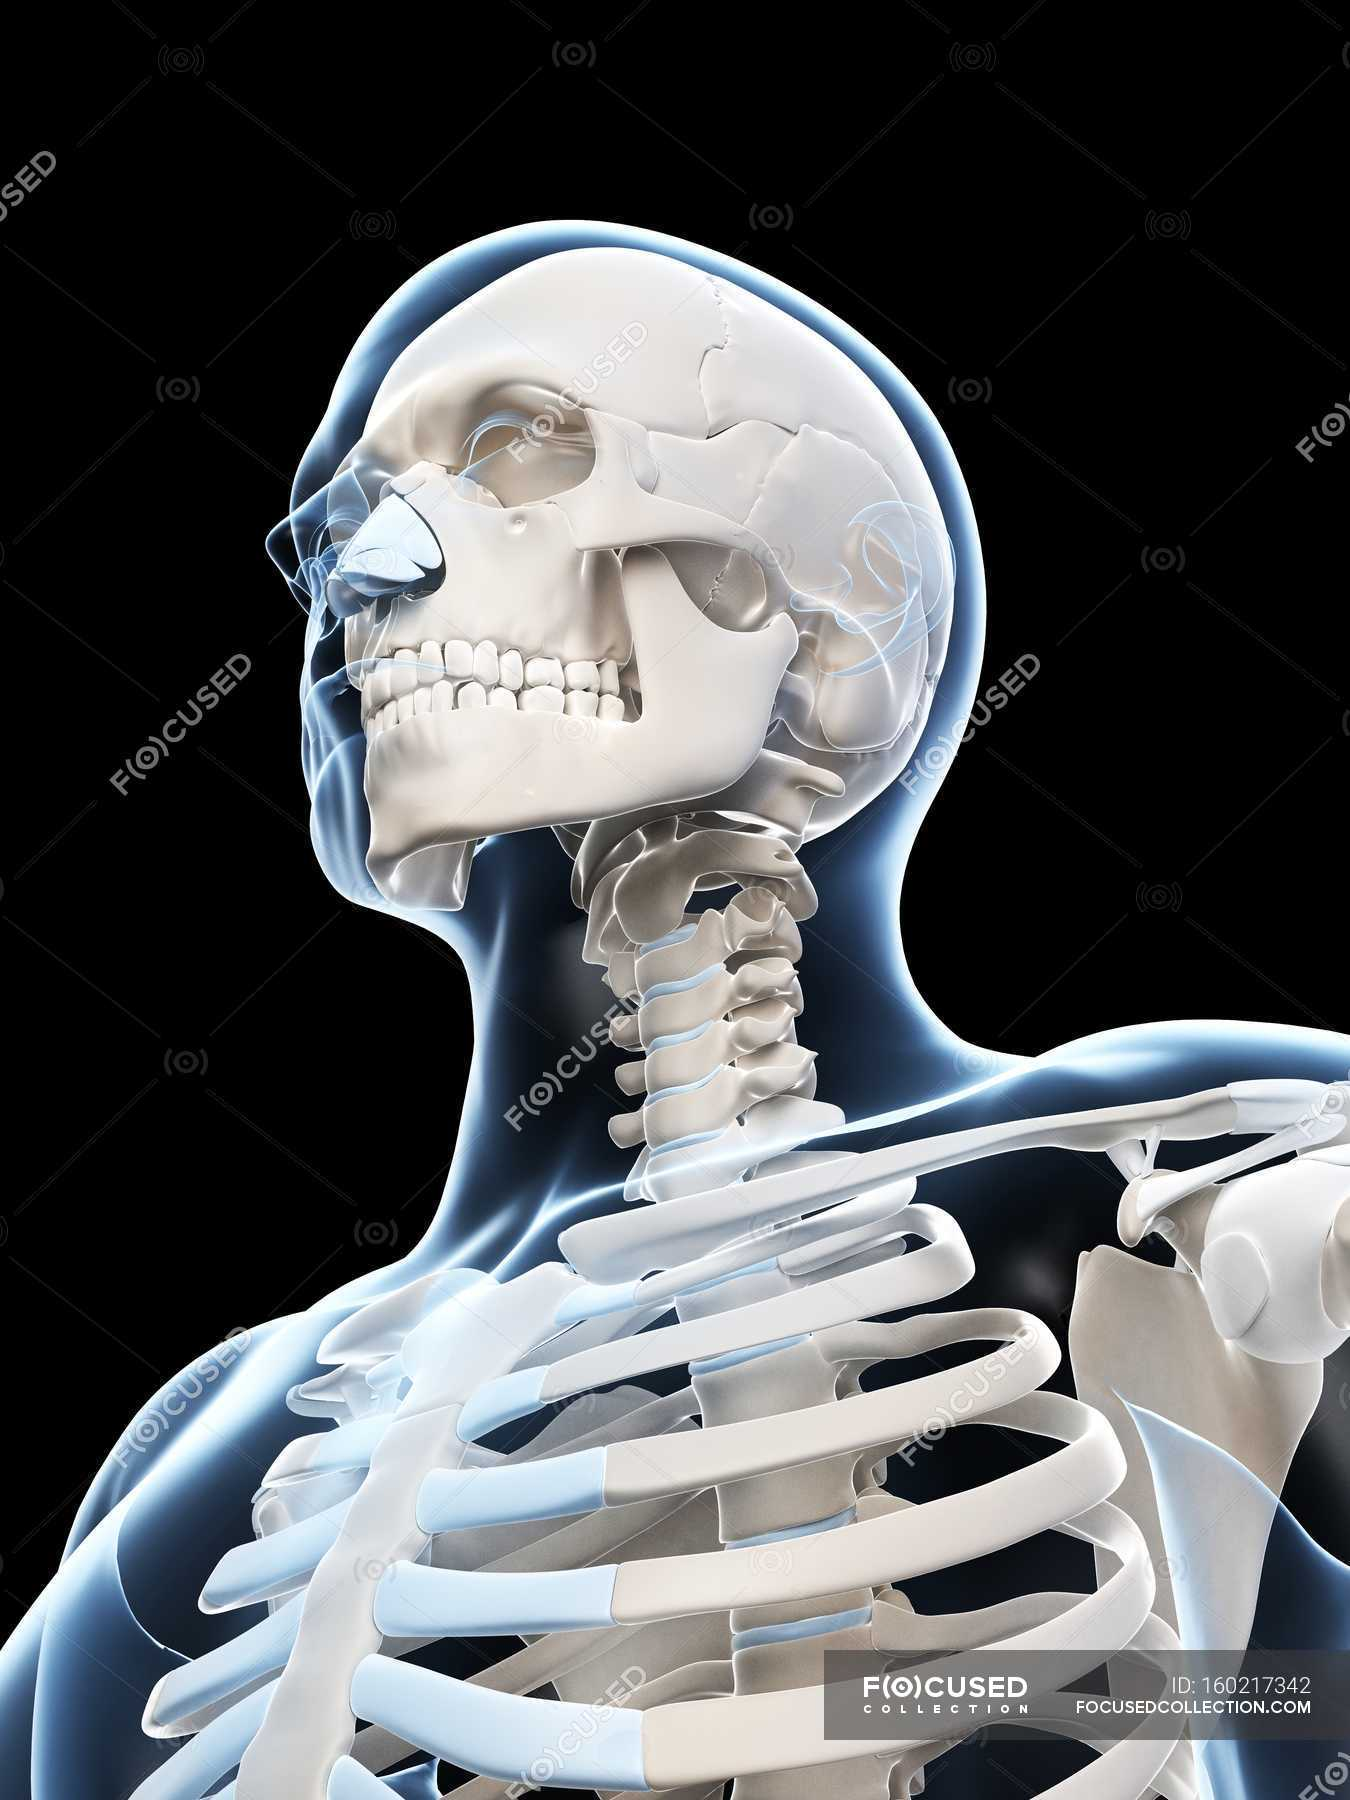 Human Skull And Neck Structure Stock Photo 160217342